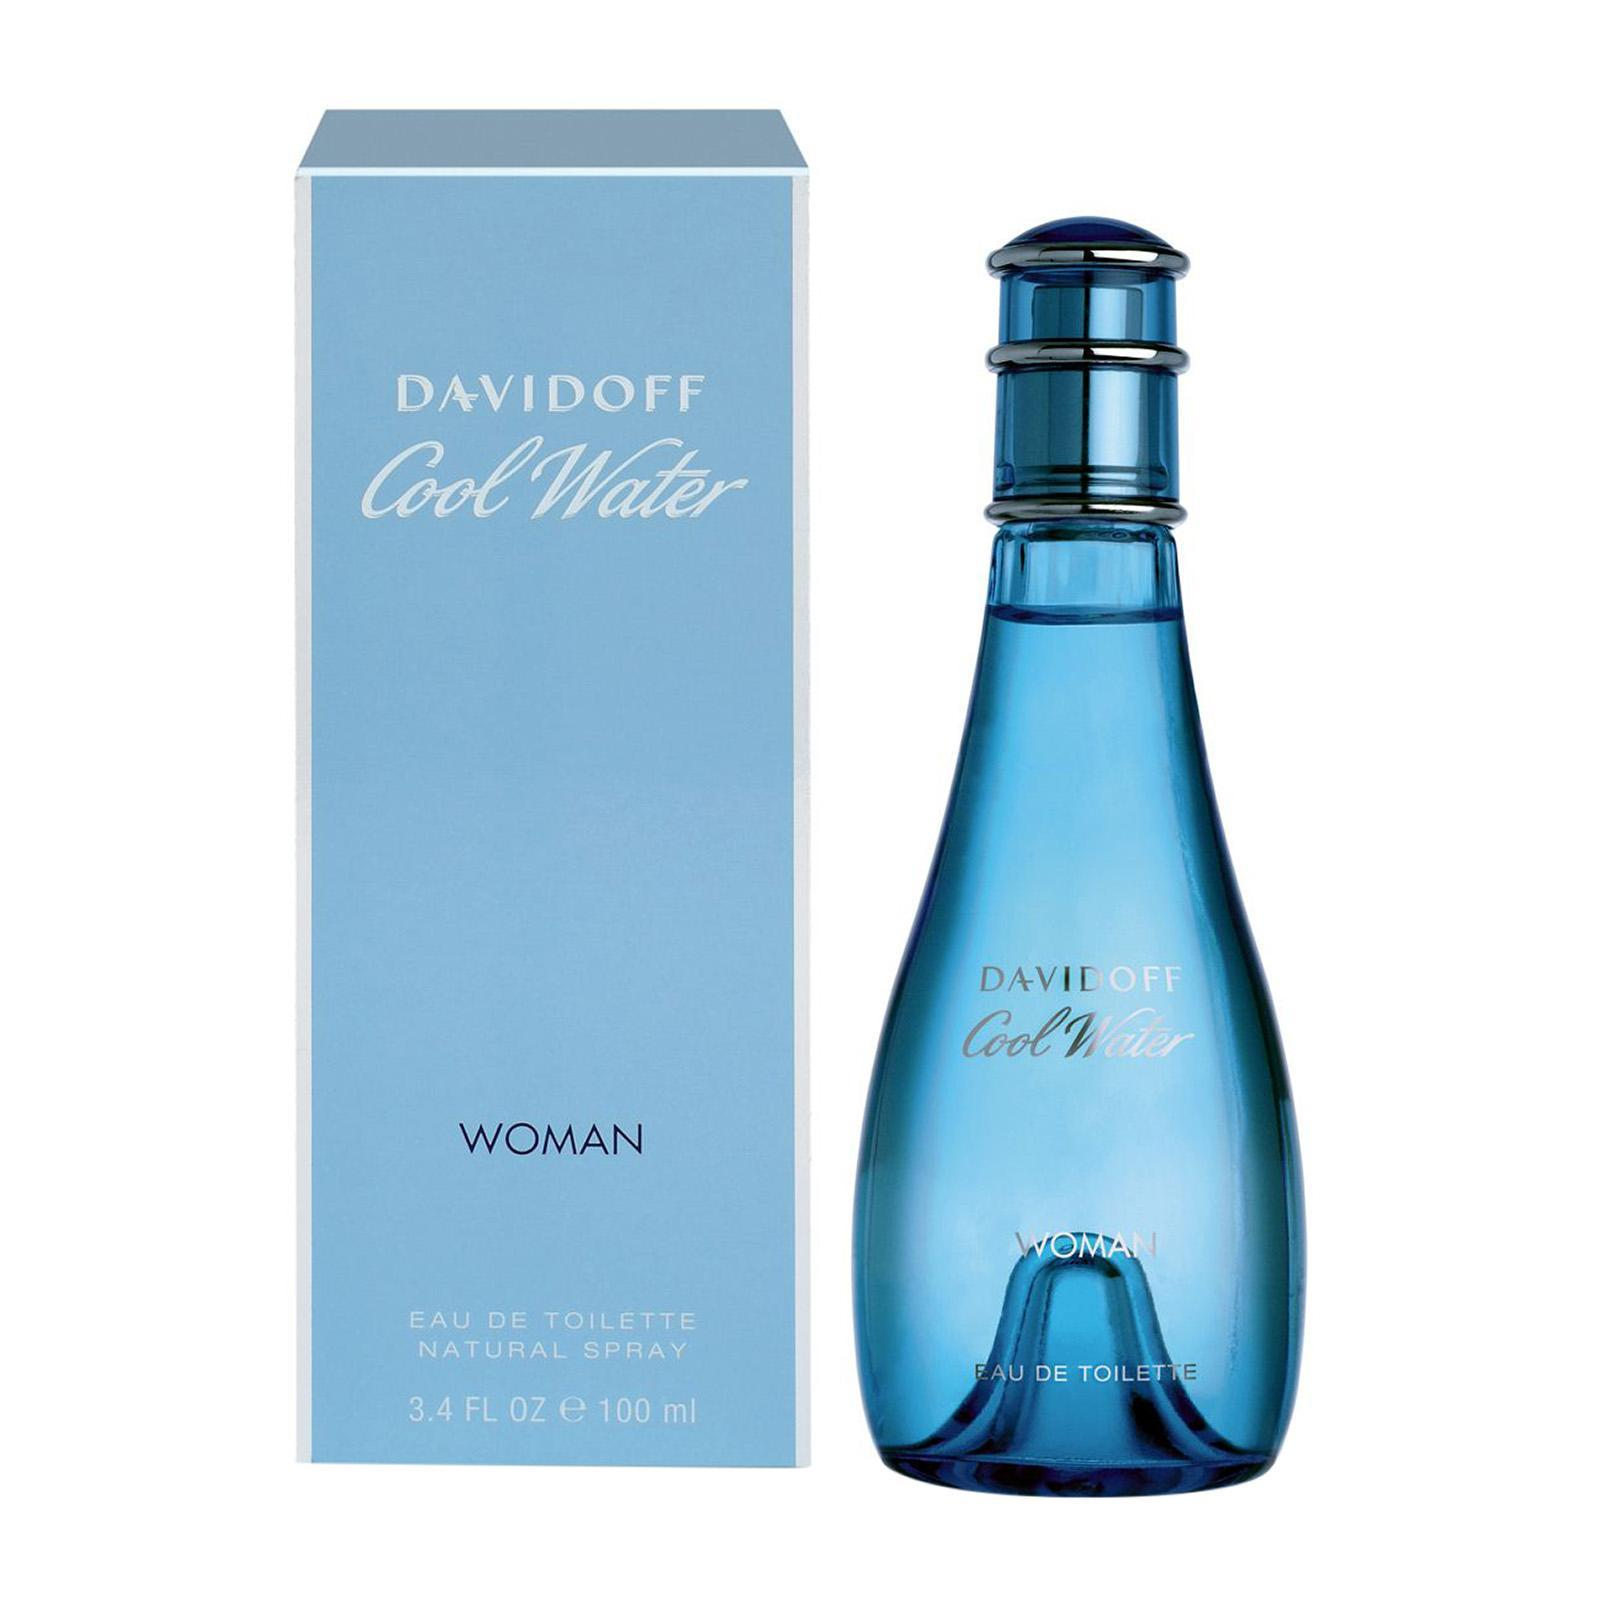 Davidoff Cool Water For Women Eau De Toilette Perfume Fragrance Spray - By BEAULUXLAB